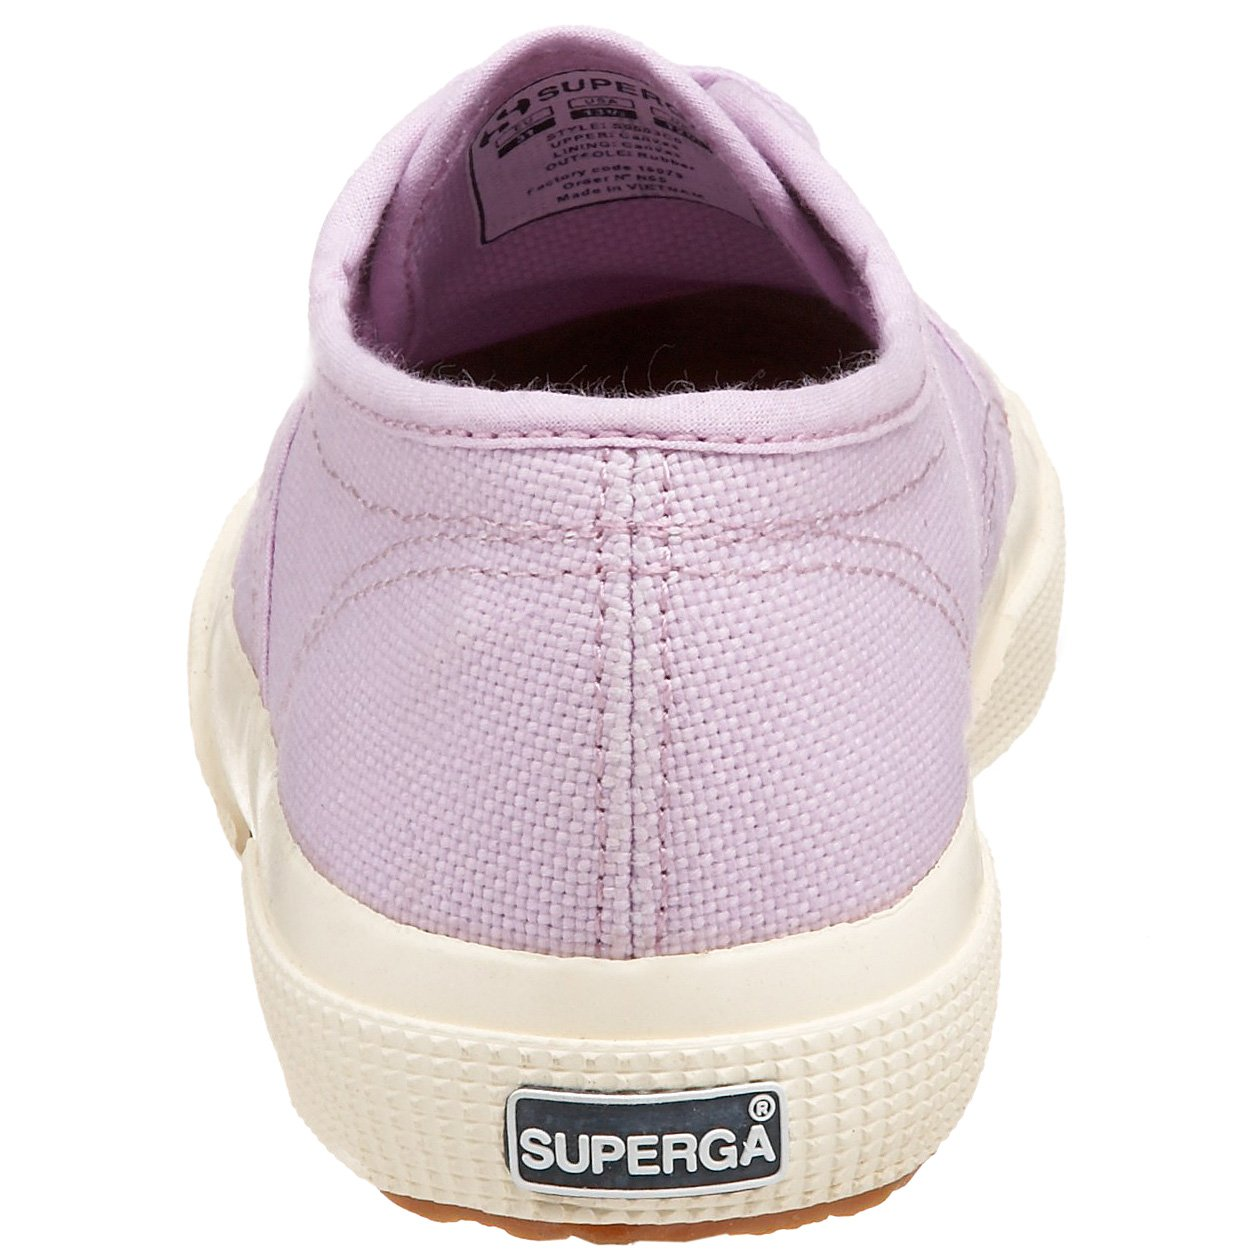 Superga Toddler//Little Kid Classic Sneaker